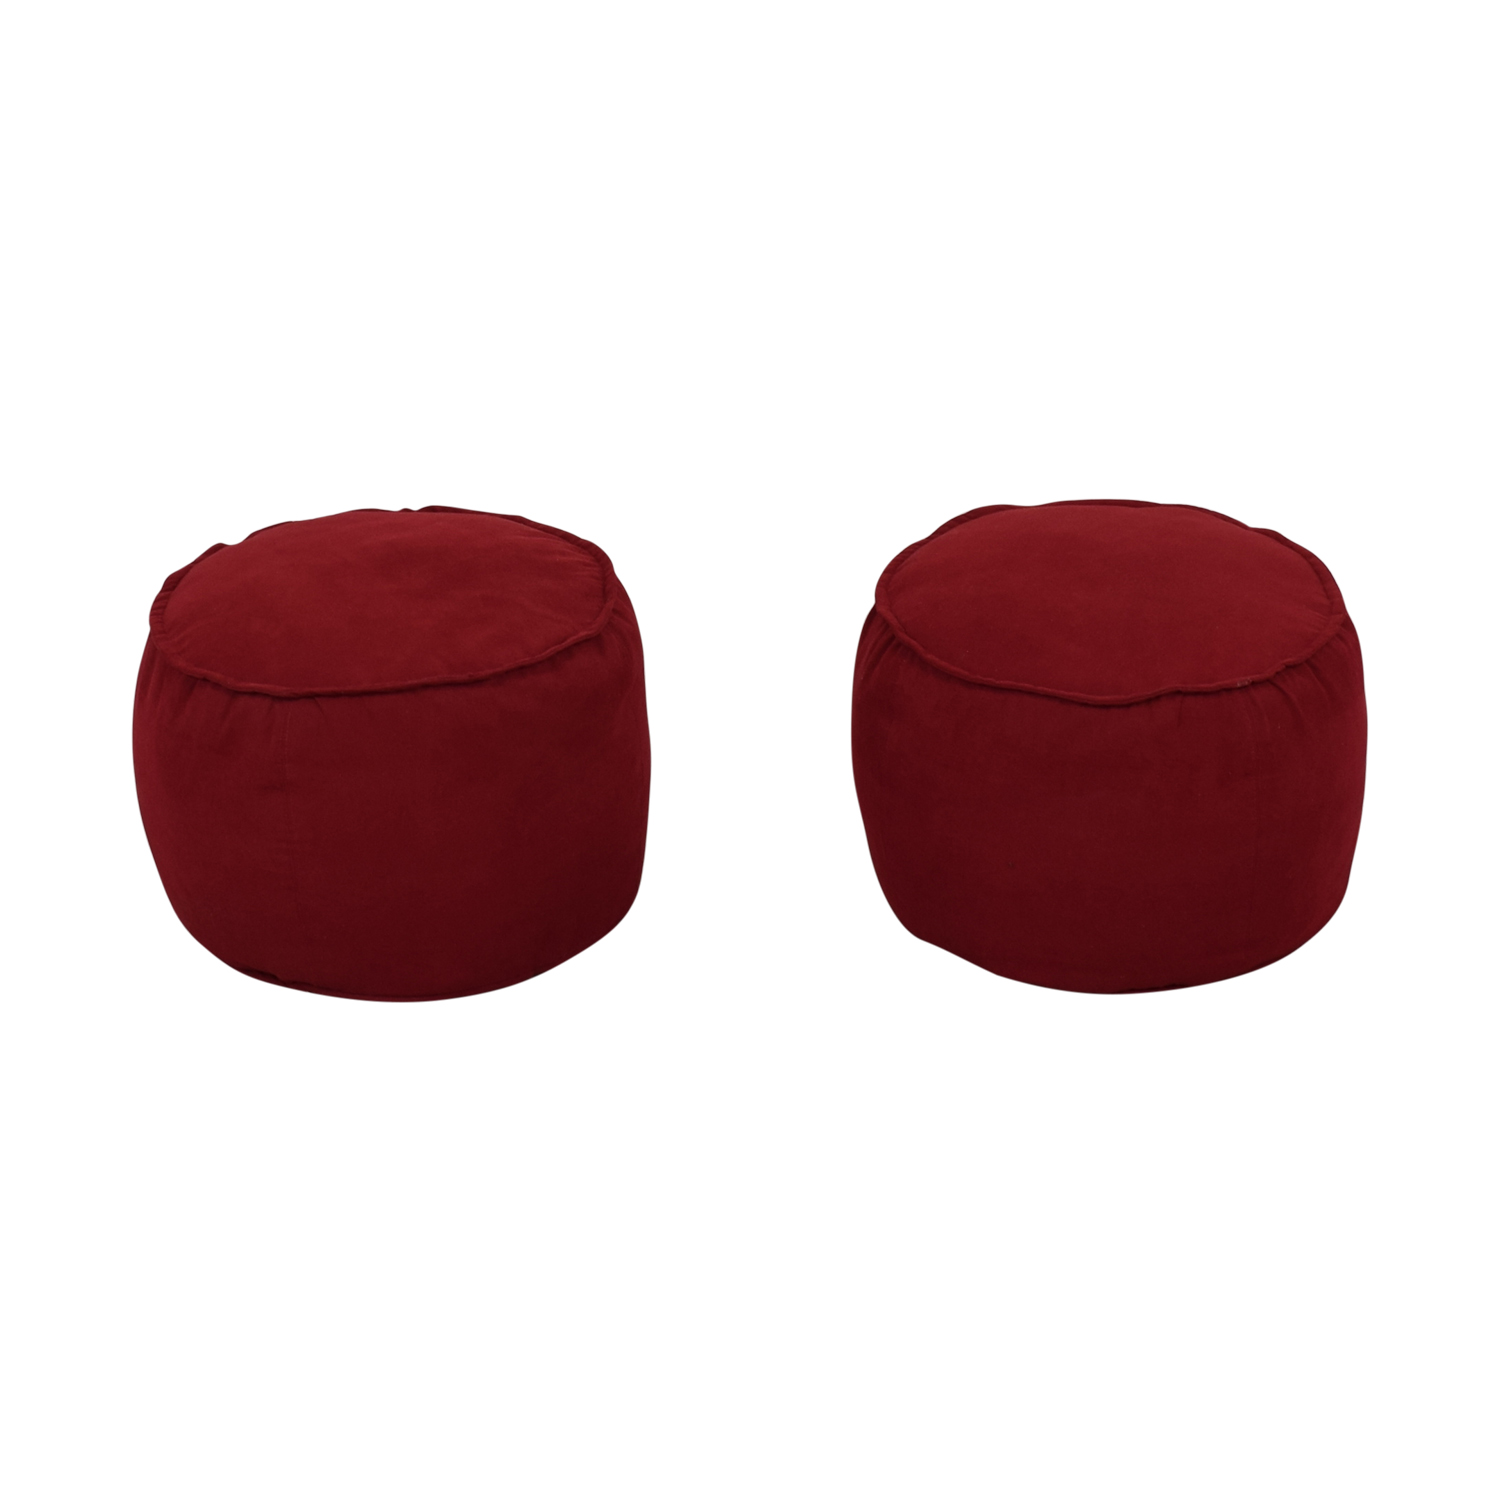 Room & Board Red Round Ottomans / Chairs